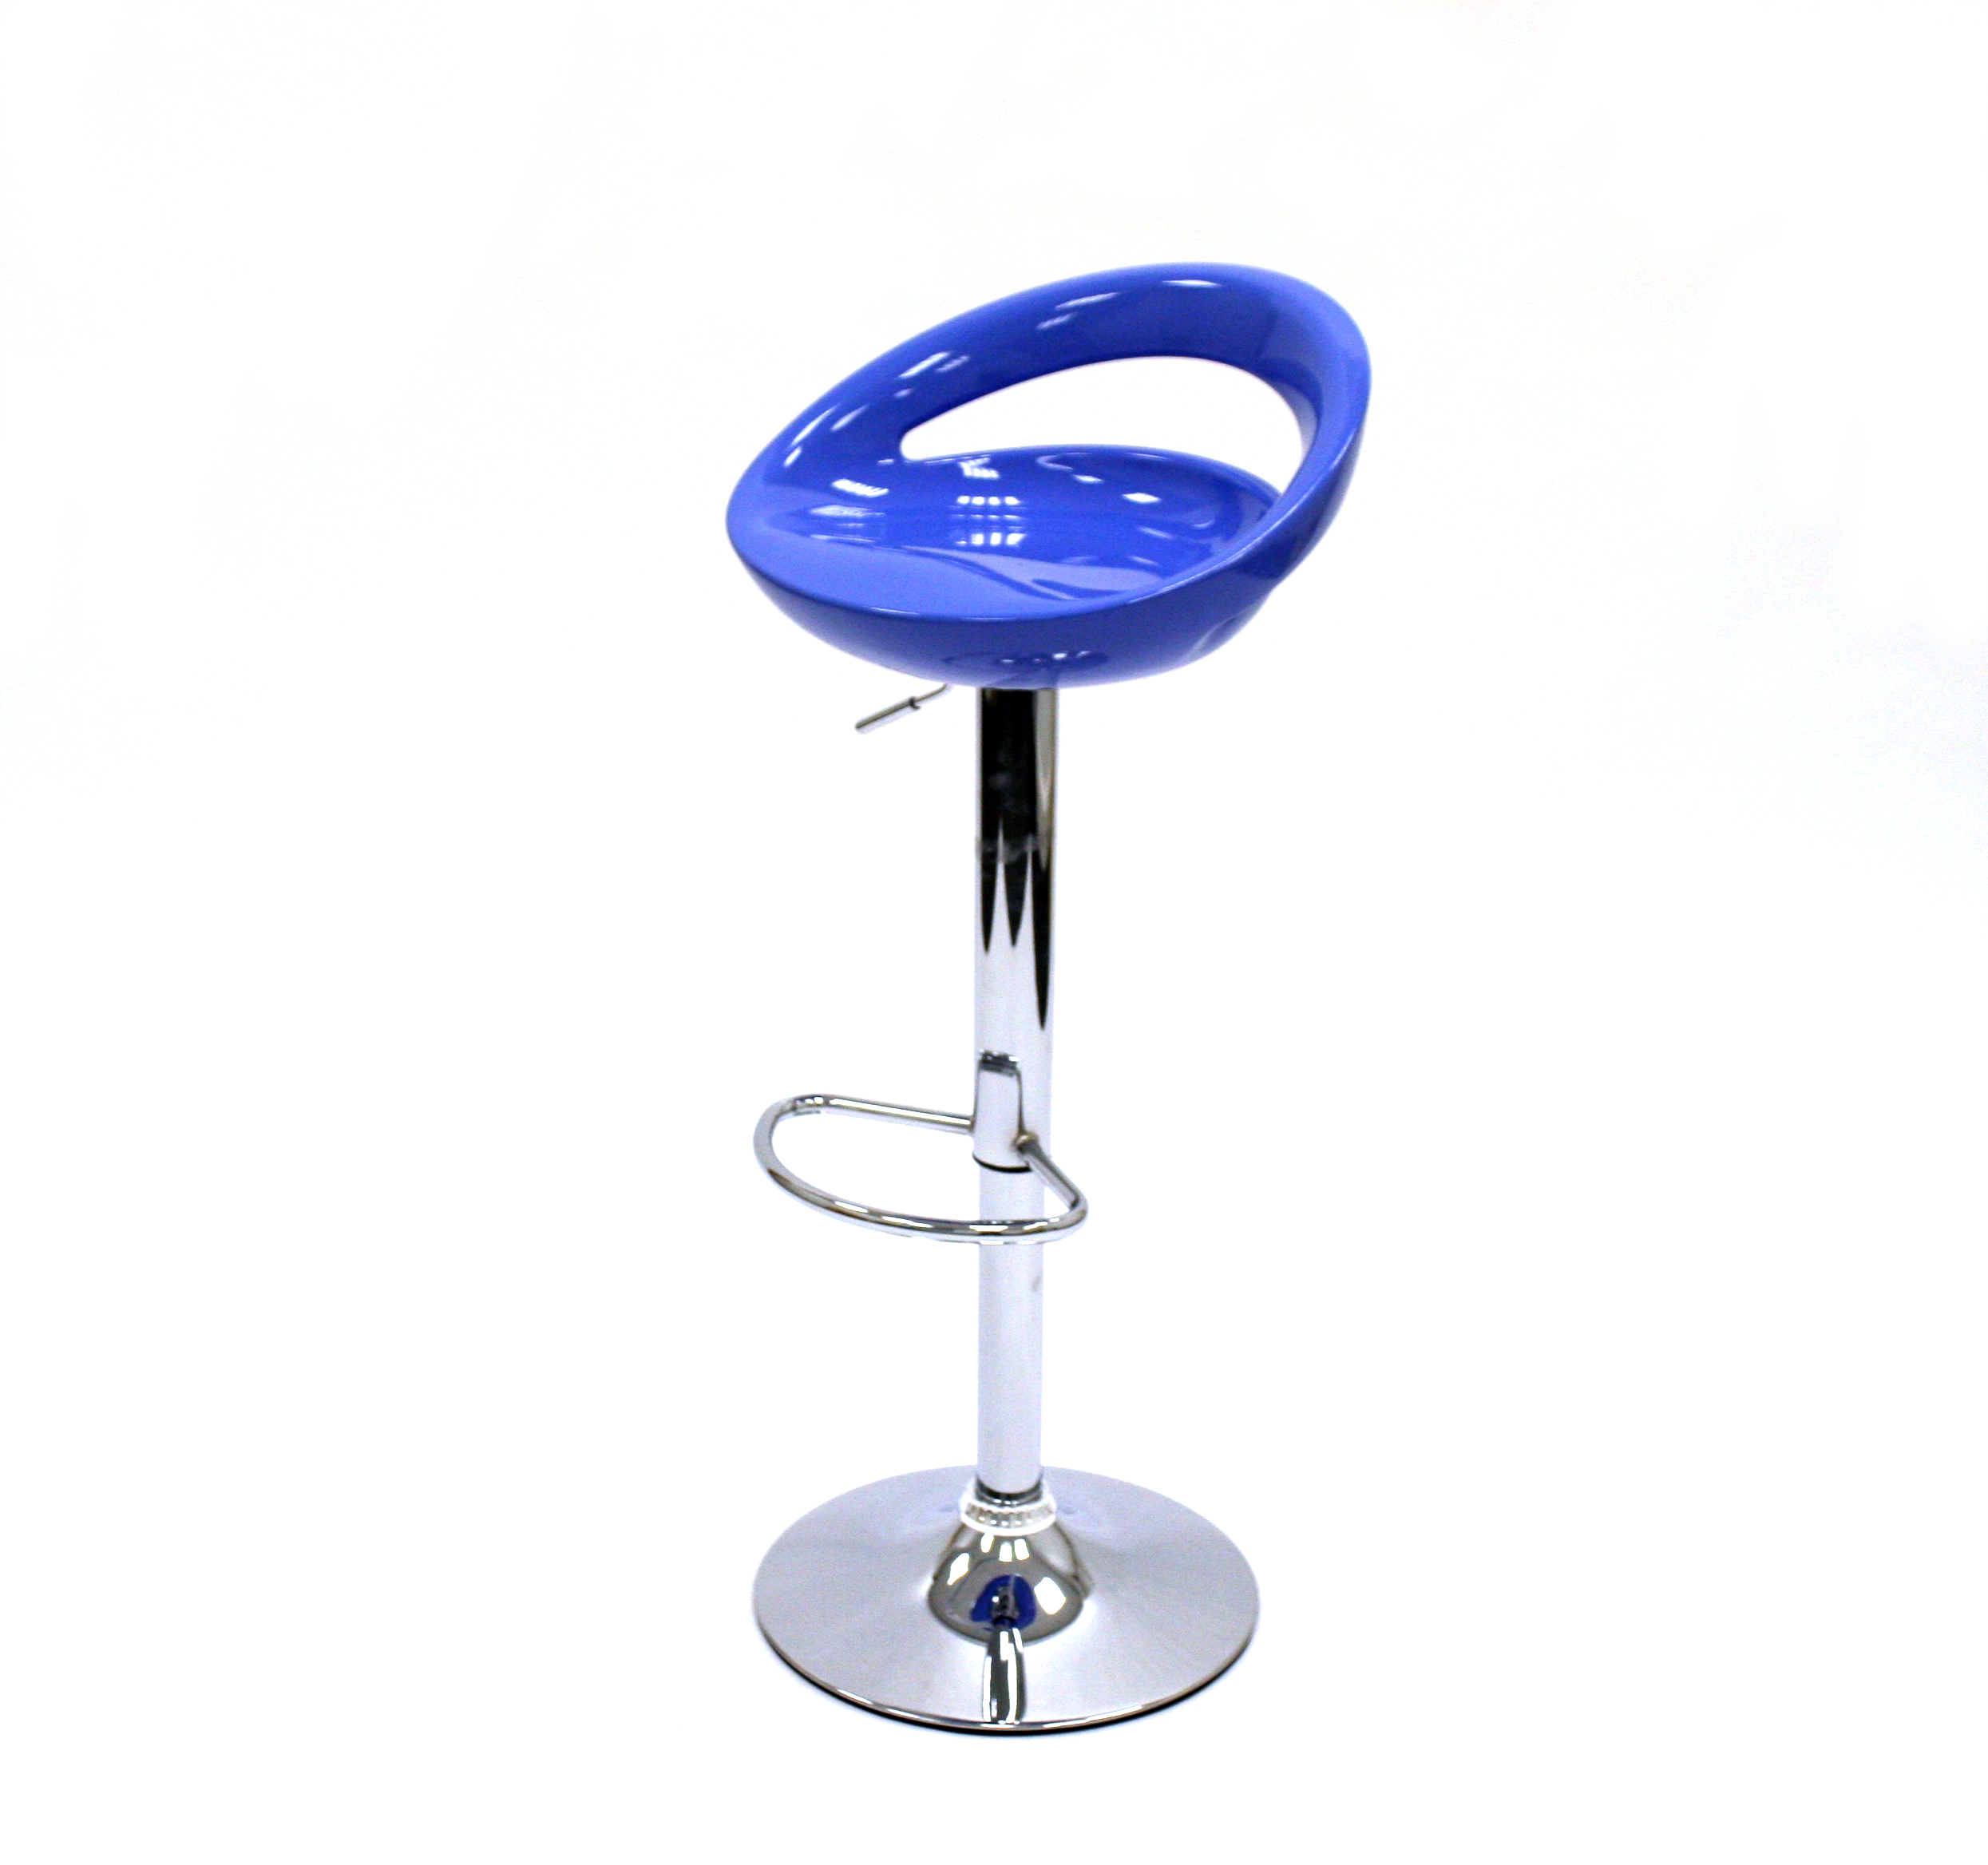 Blue Plastic Bar Stool Hire - Events, Exhibition Stools - BE Event Hire